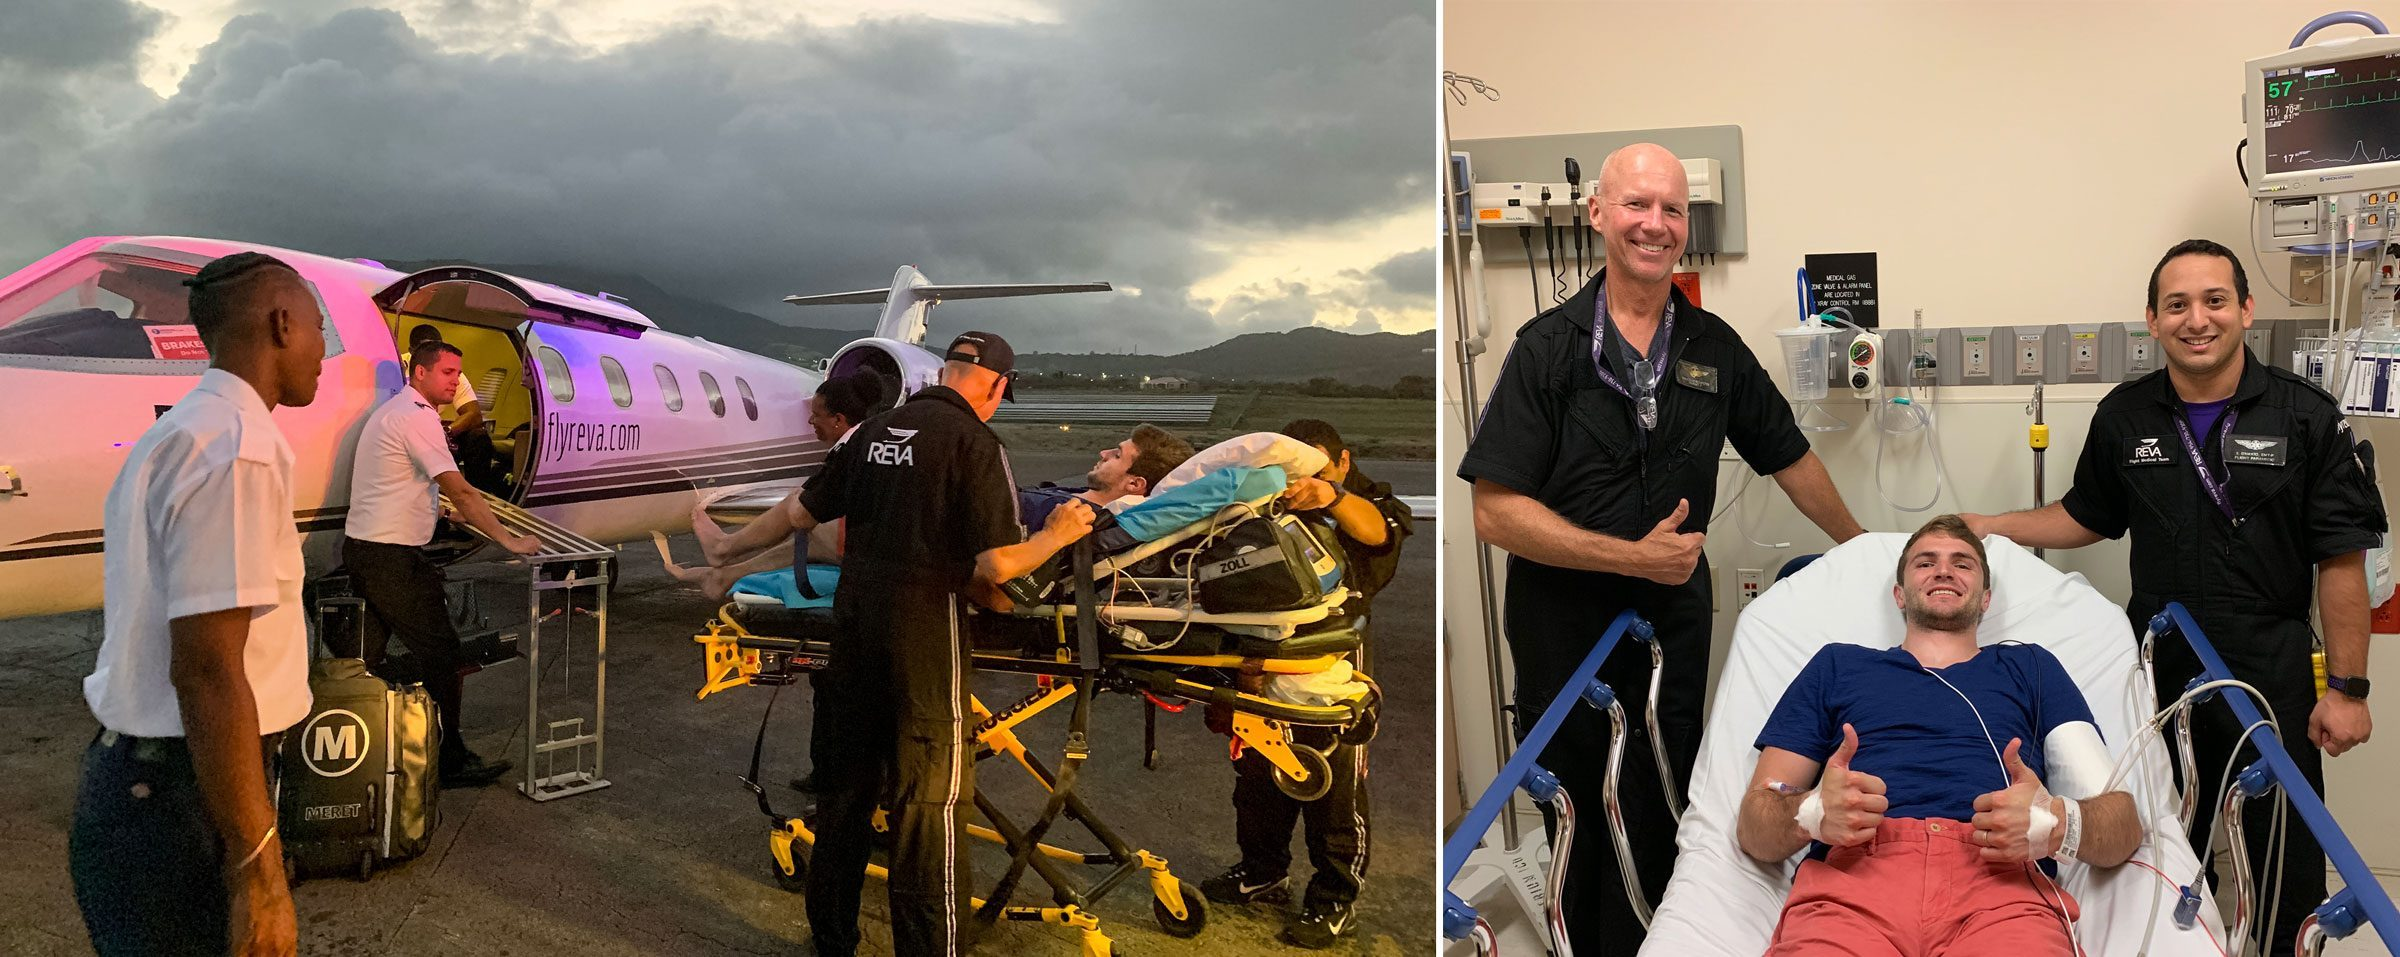 left: Clay being loaded into the medevac plane; right: Clay with the medevac EMTs in the ER in Florida